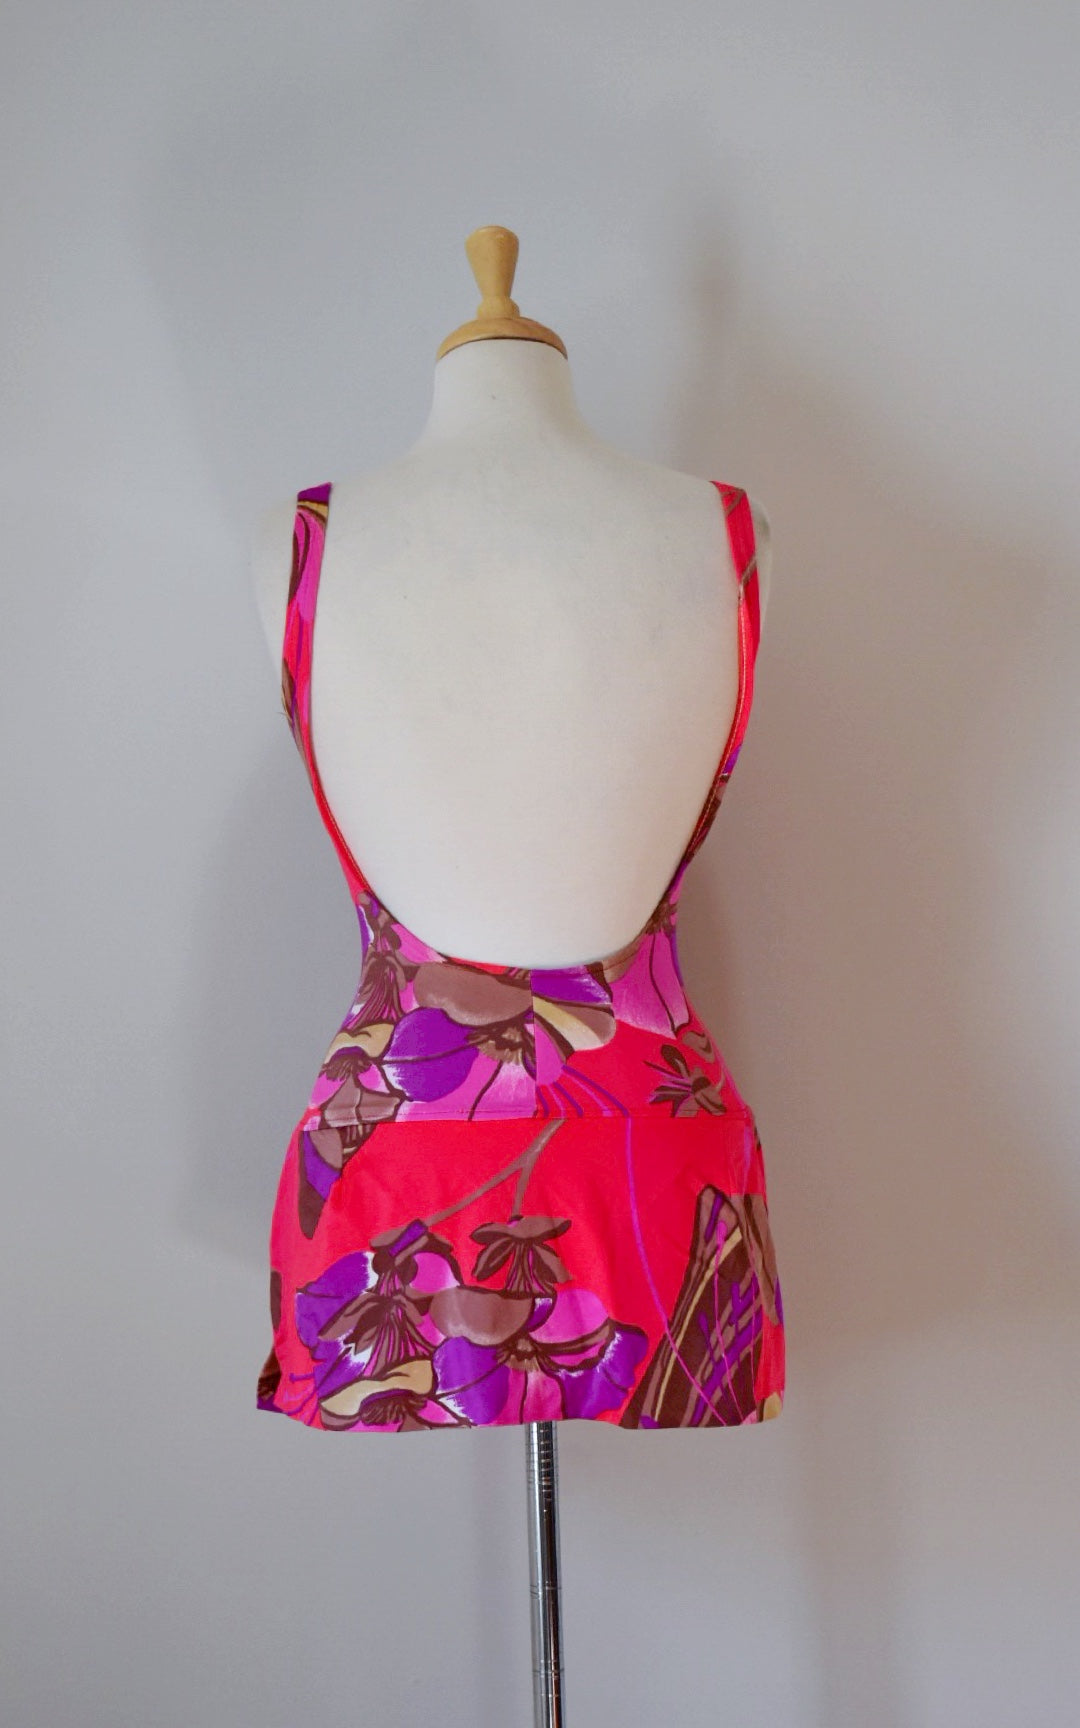 60s / 70s Vintage Jantzen Skirted Swimsuit